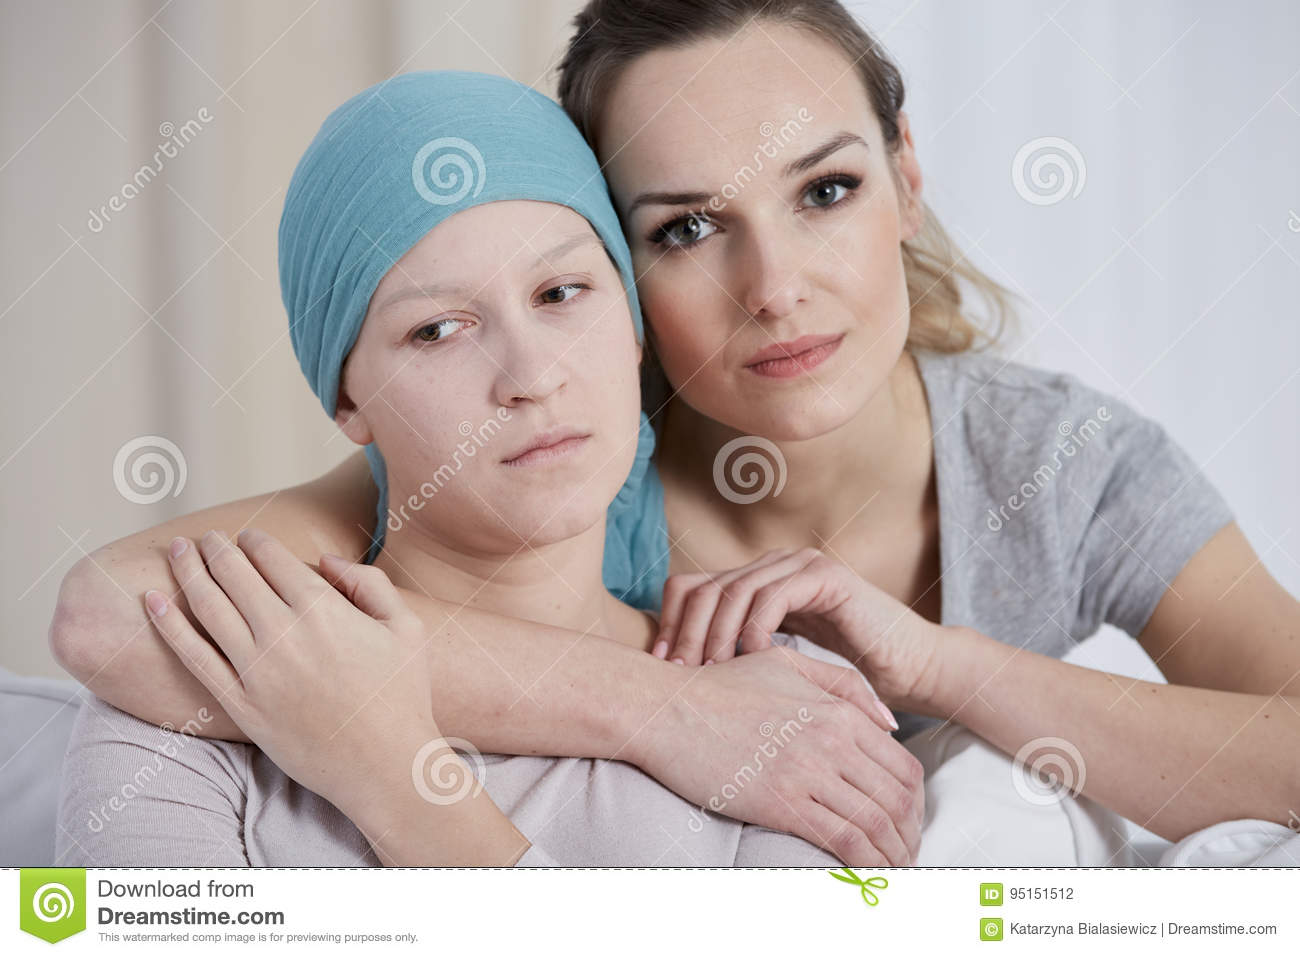 Woman supporting her friend